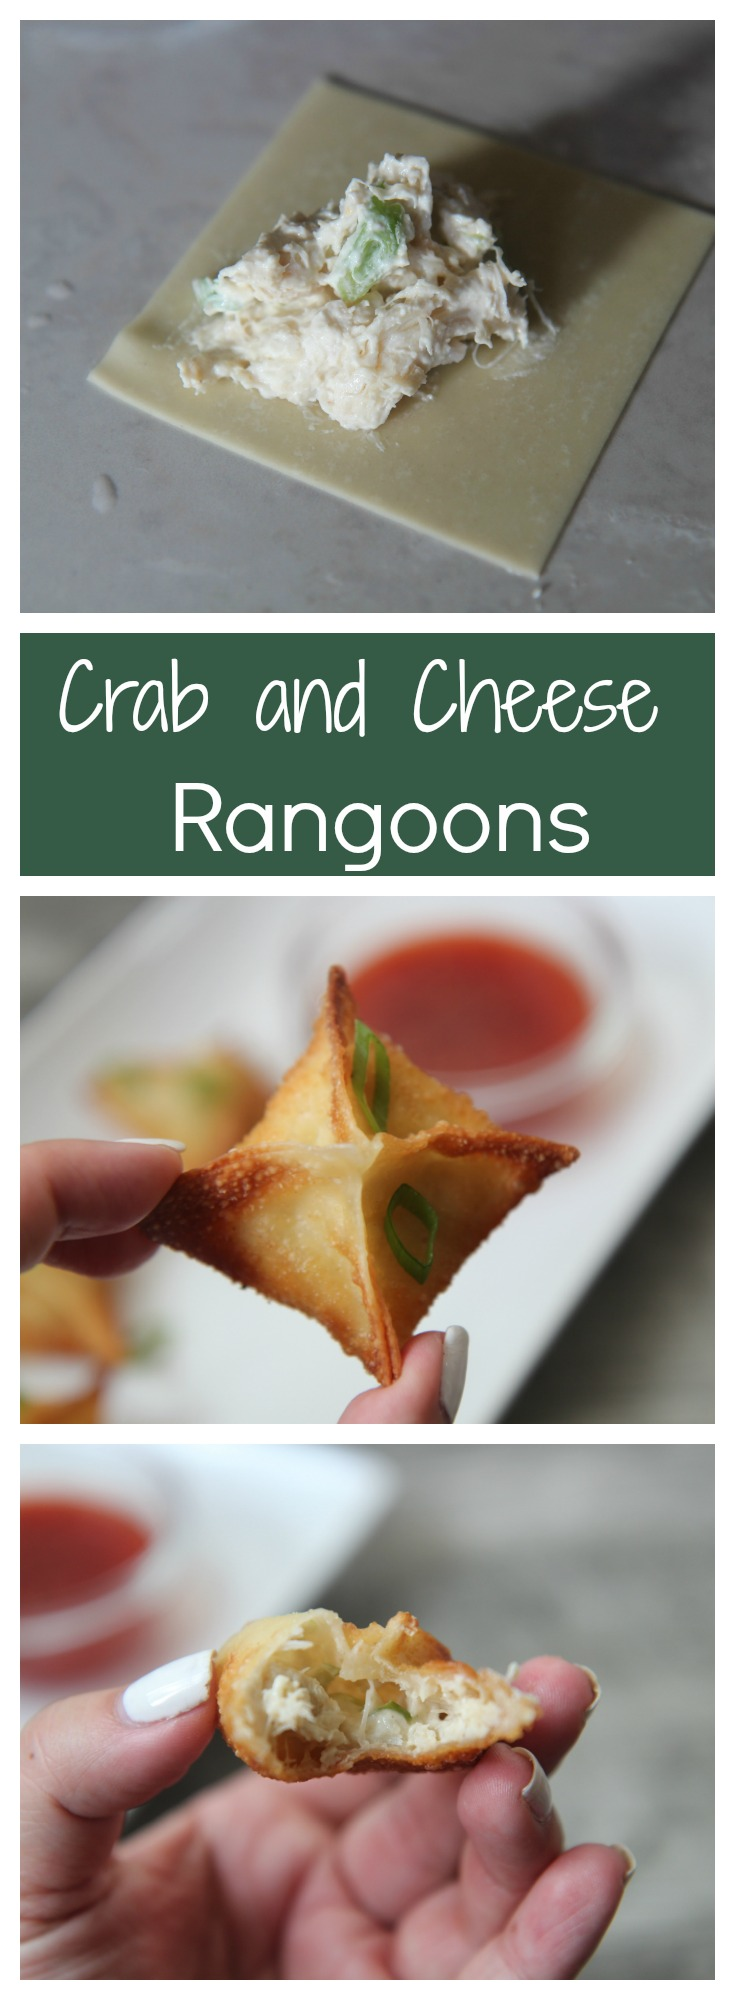 Cream Cheese and Crab Rangoon recipe.